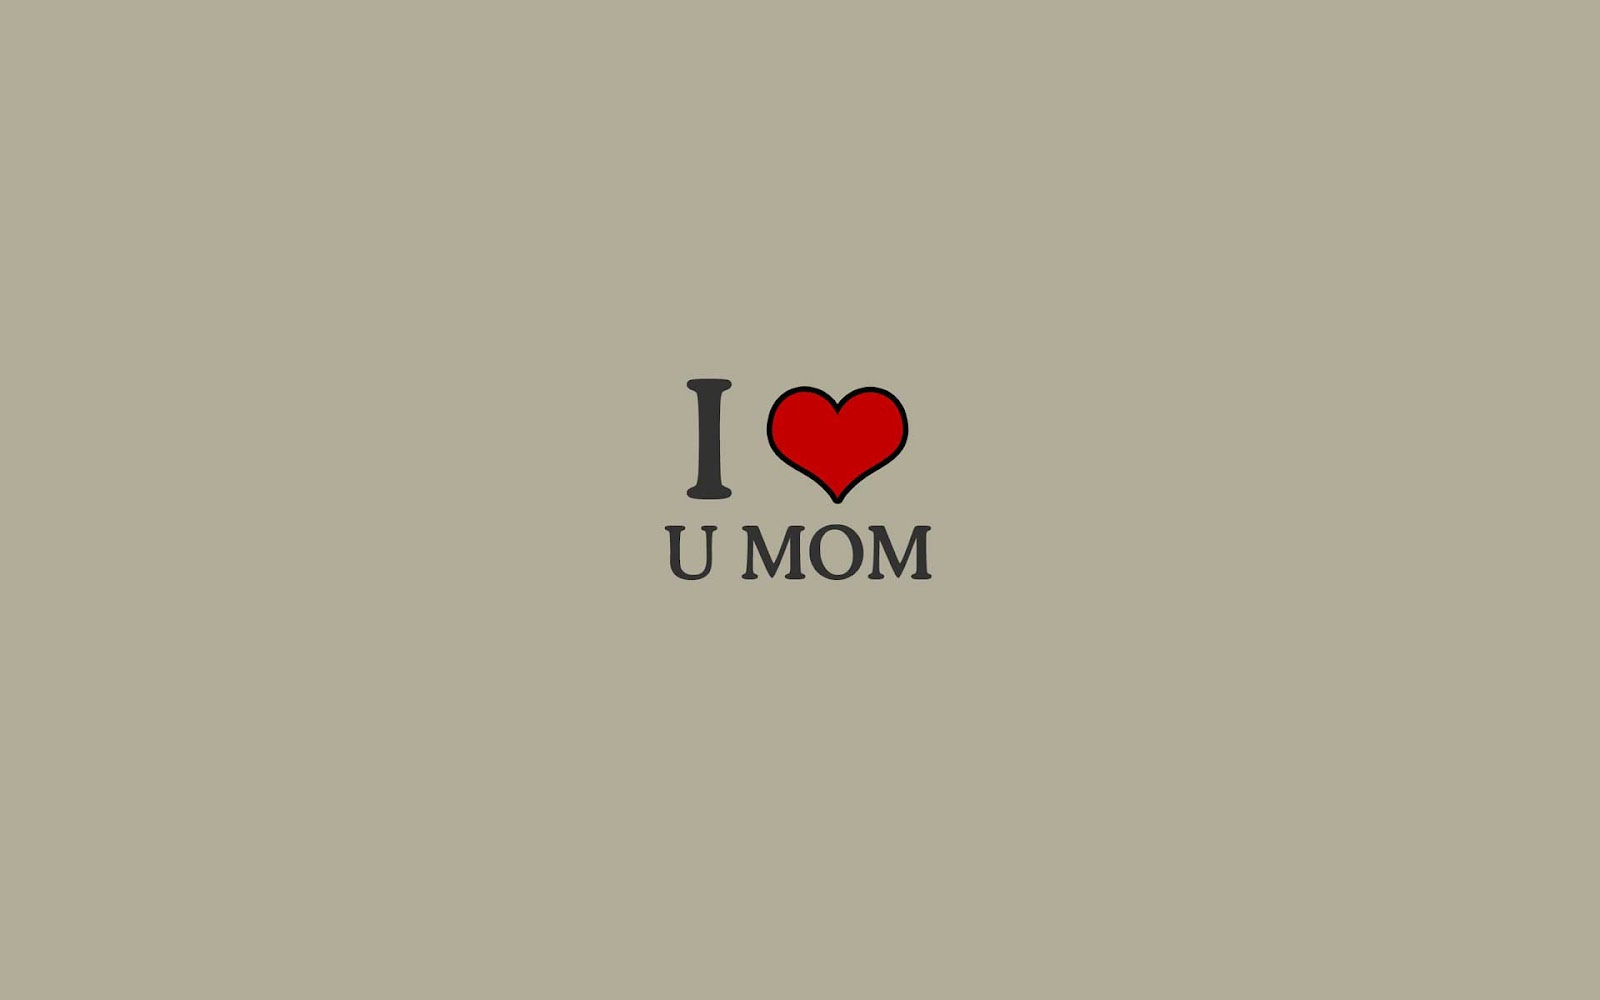 i love you mom wallpapers free christian wallpapers